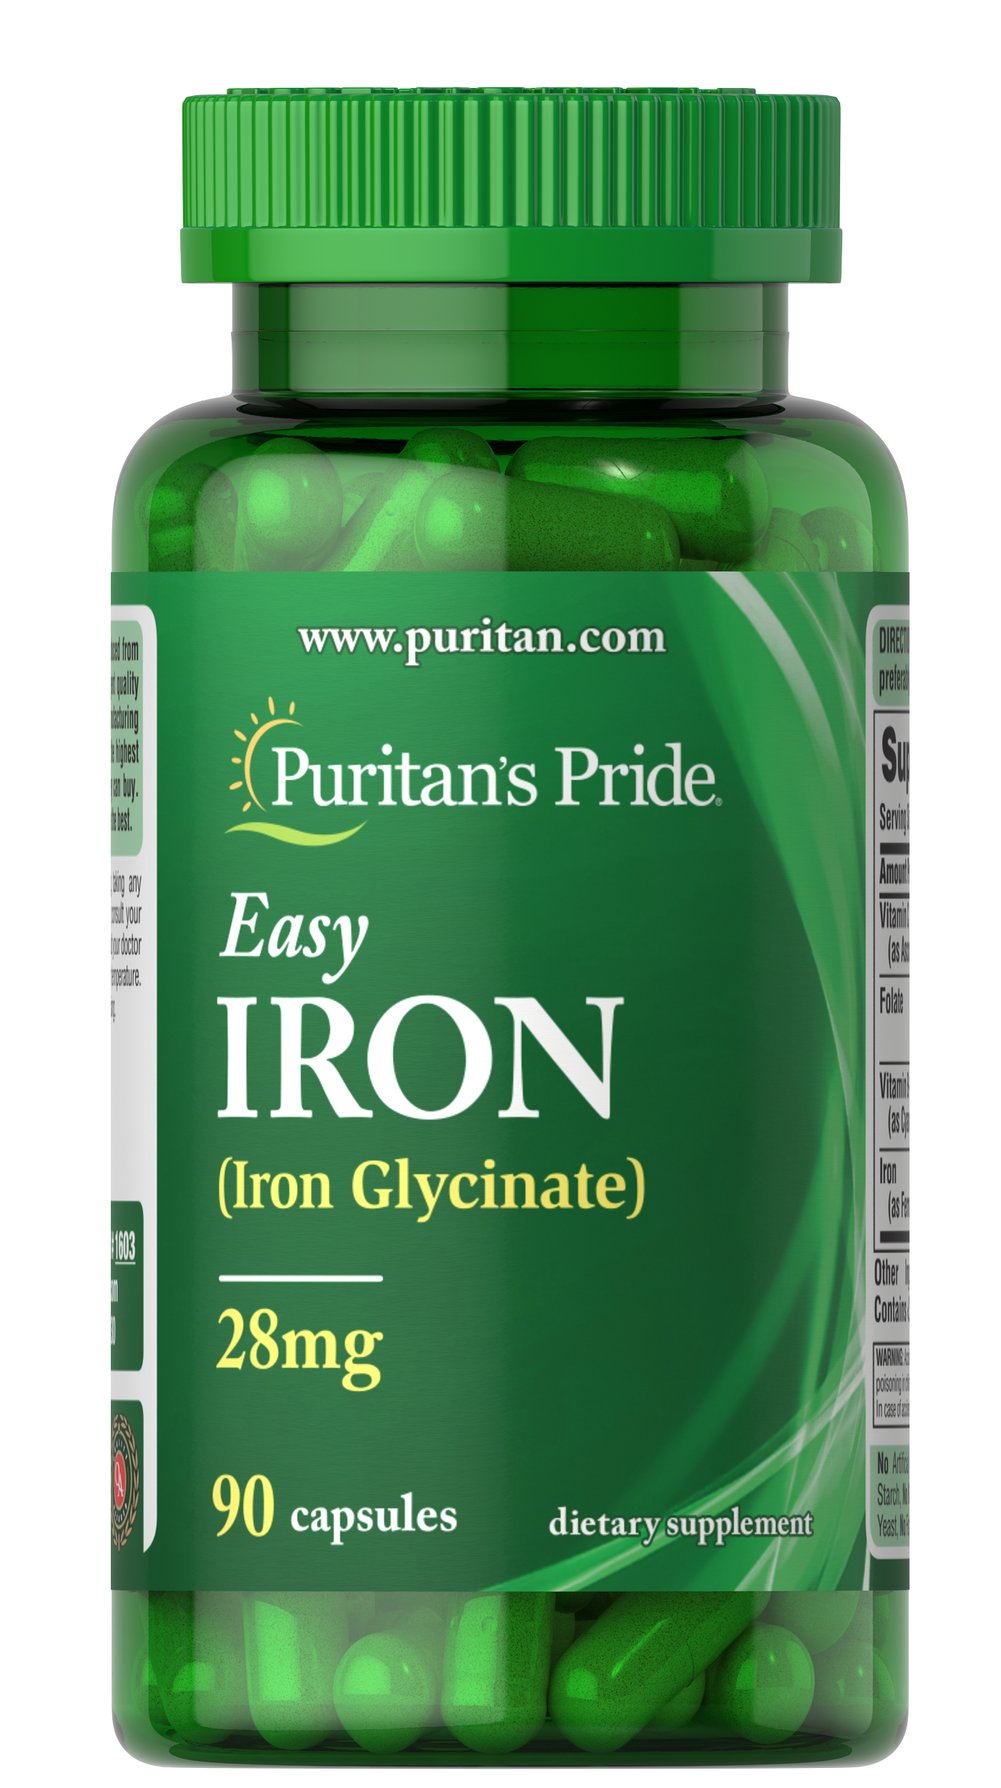 Easy Iron 28 mg (Iron Glycinate) <p>Supports Energy Utilization**</p><p>As an important dietary source of Iron, EASY IRON contains Iron Bis-Glycinate, a form of Iron that is gentle to your system.**  Iron is a necessary component of hemoglobin, the oxygen carrier in the blood and is also important for energy utilization.** </p> 90 Capsules 28 mg $9.99